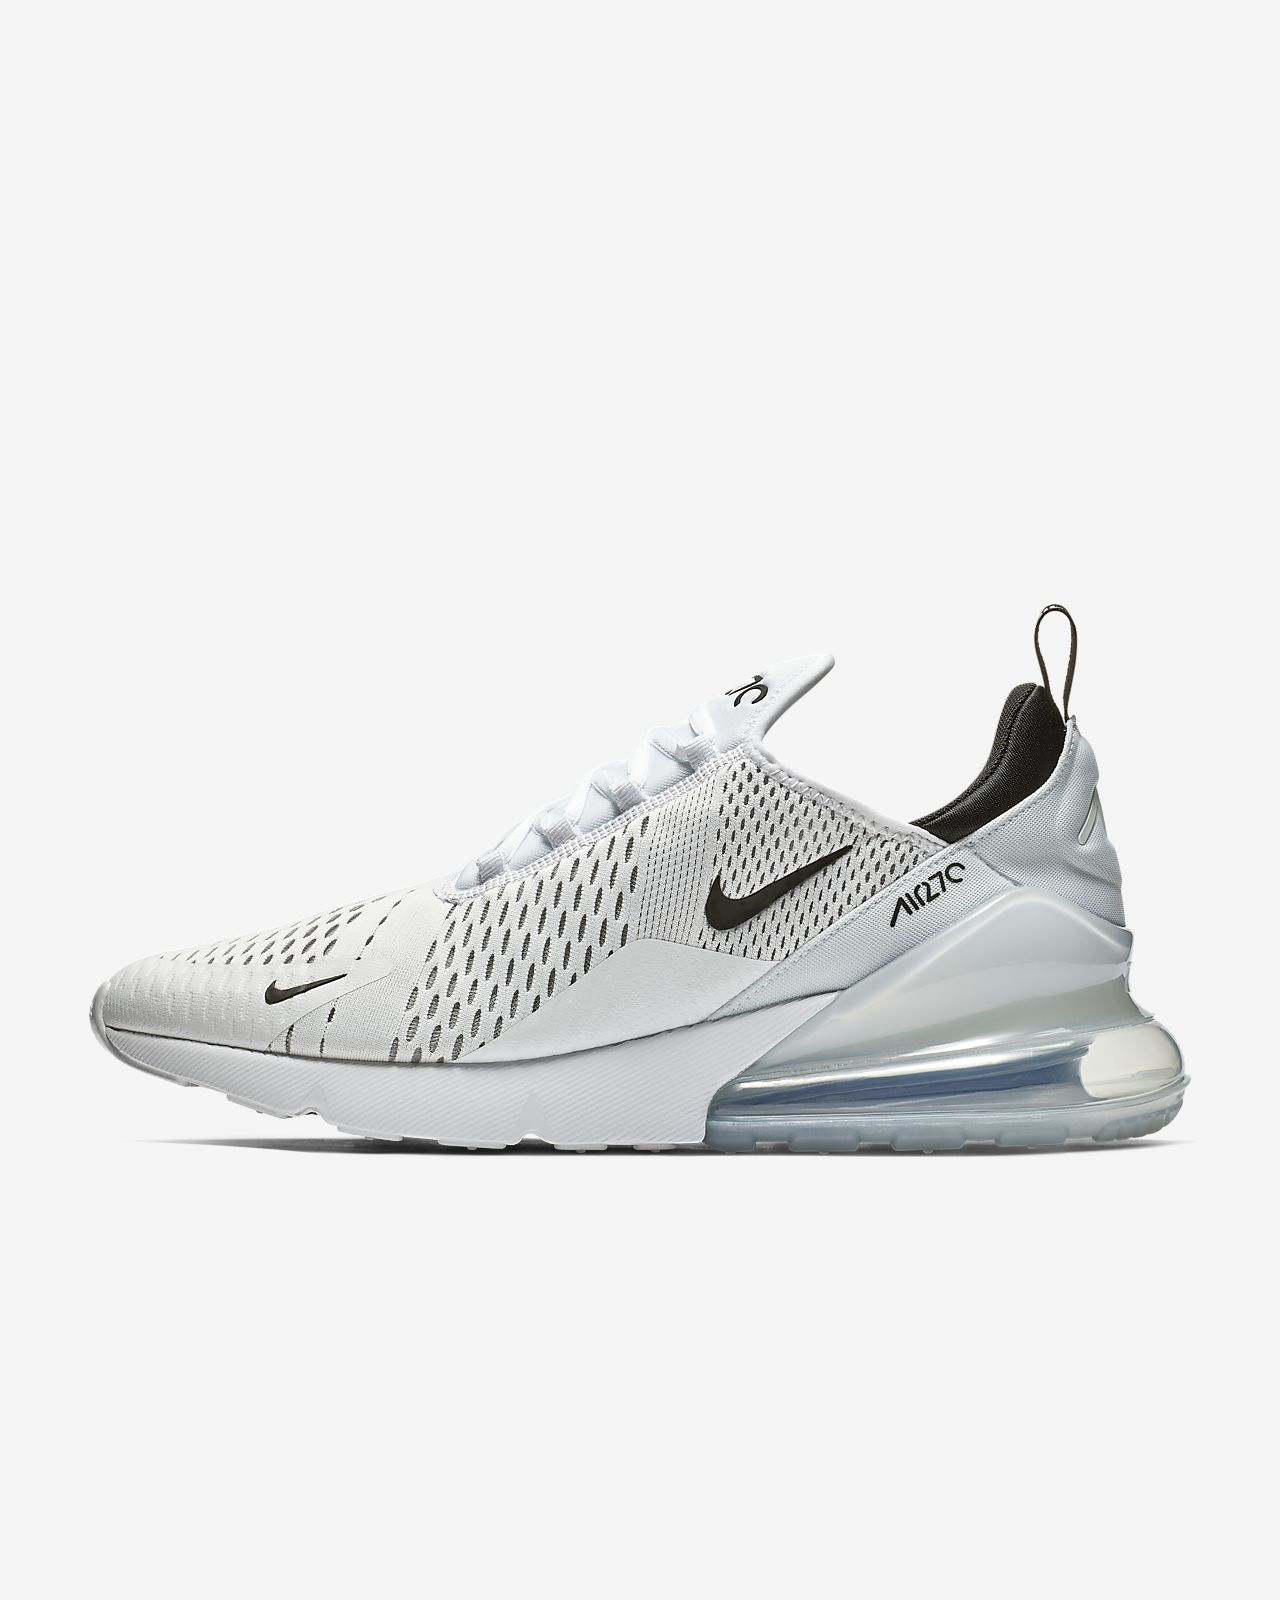 8f978798a9 Nike Air Max 270 Men's Shoe. Nike.com GB